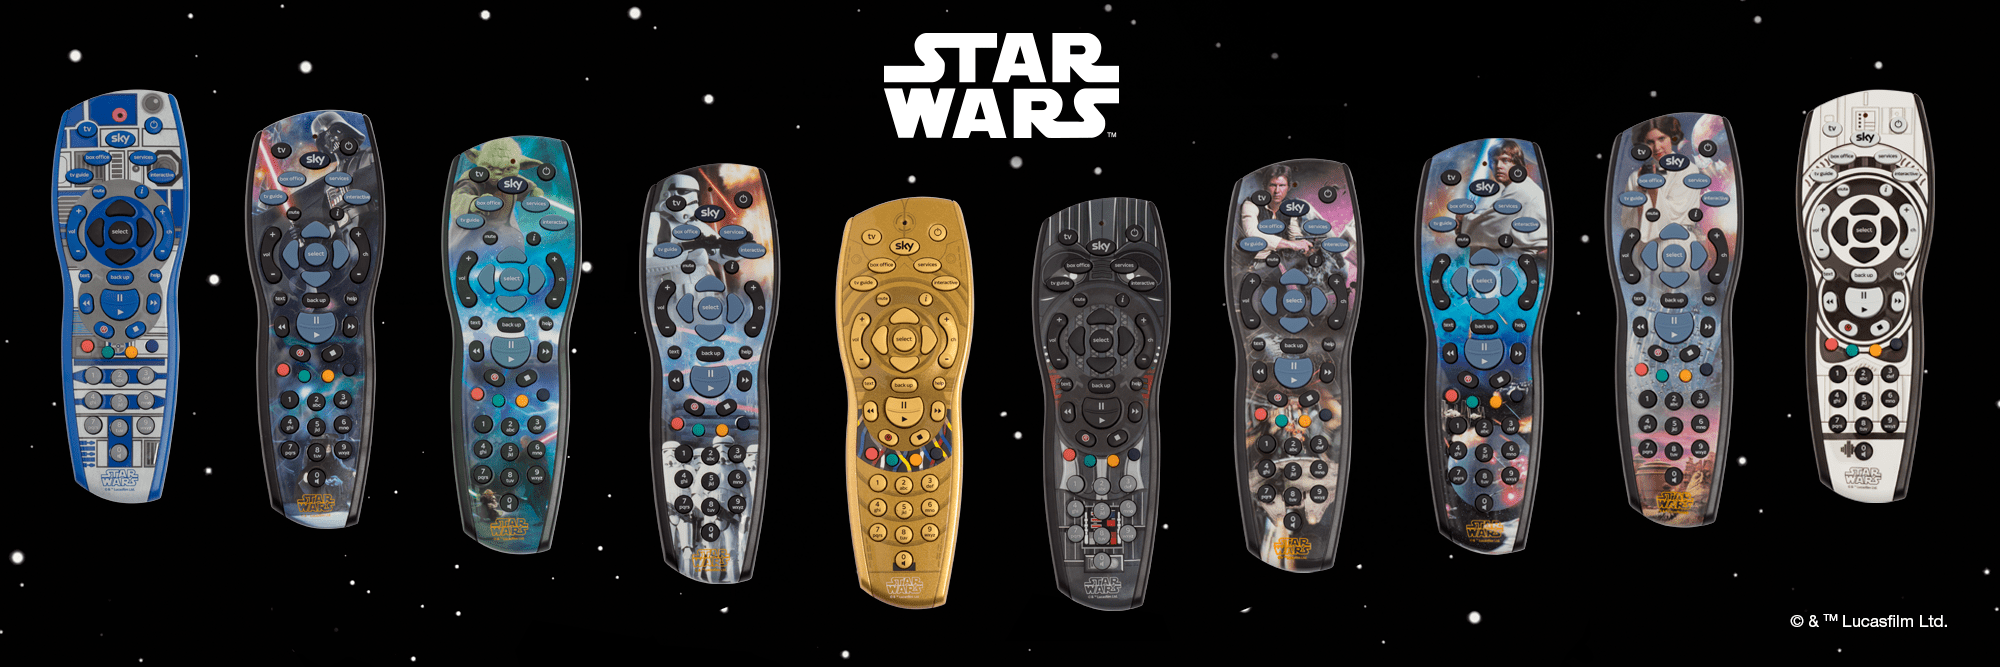 10 exclusive Star Wars™ Sky+HD remotes